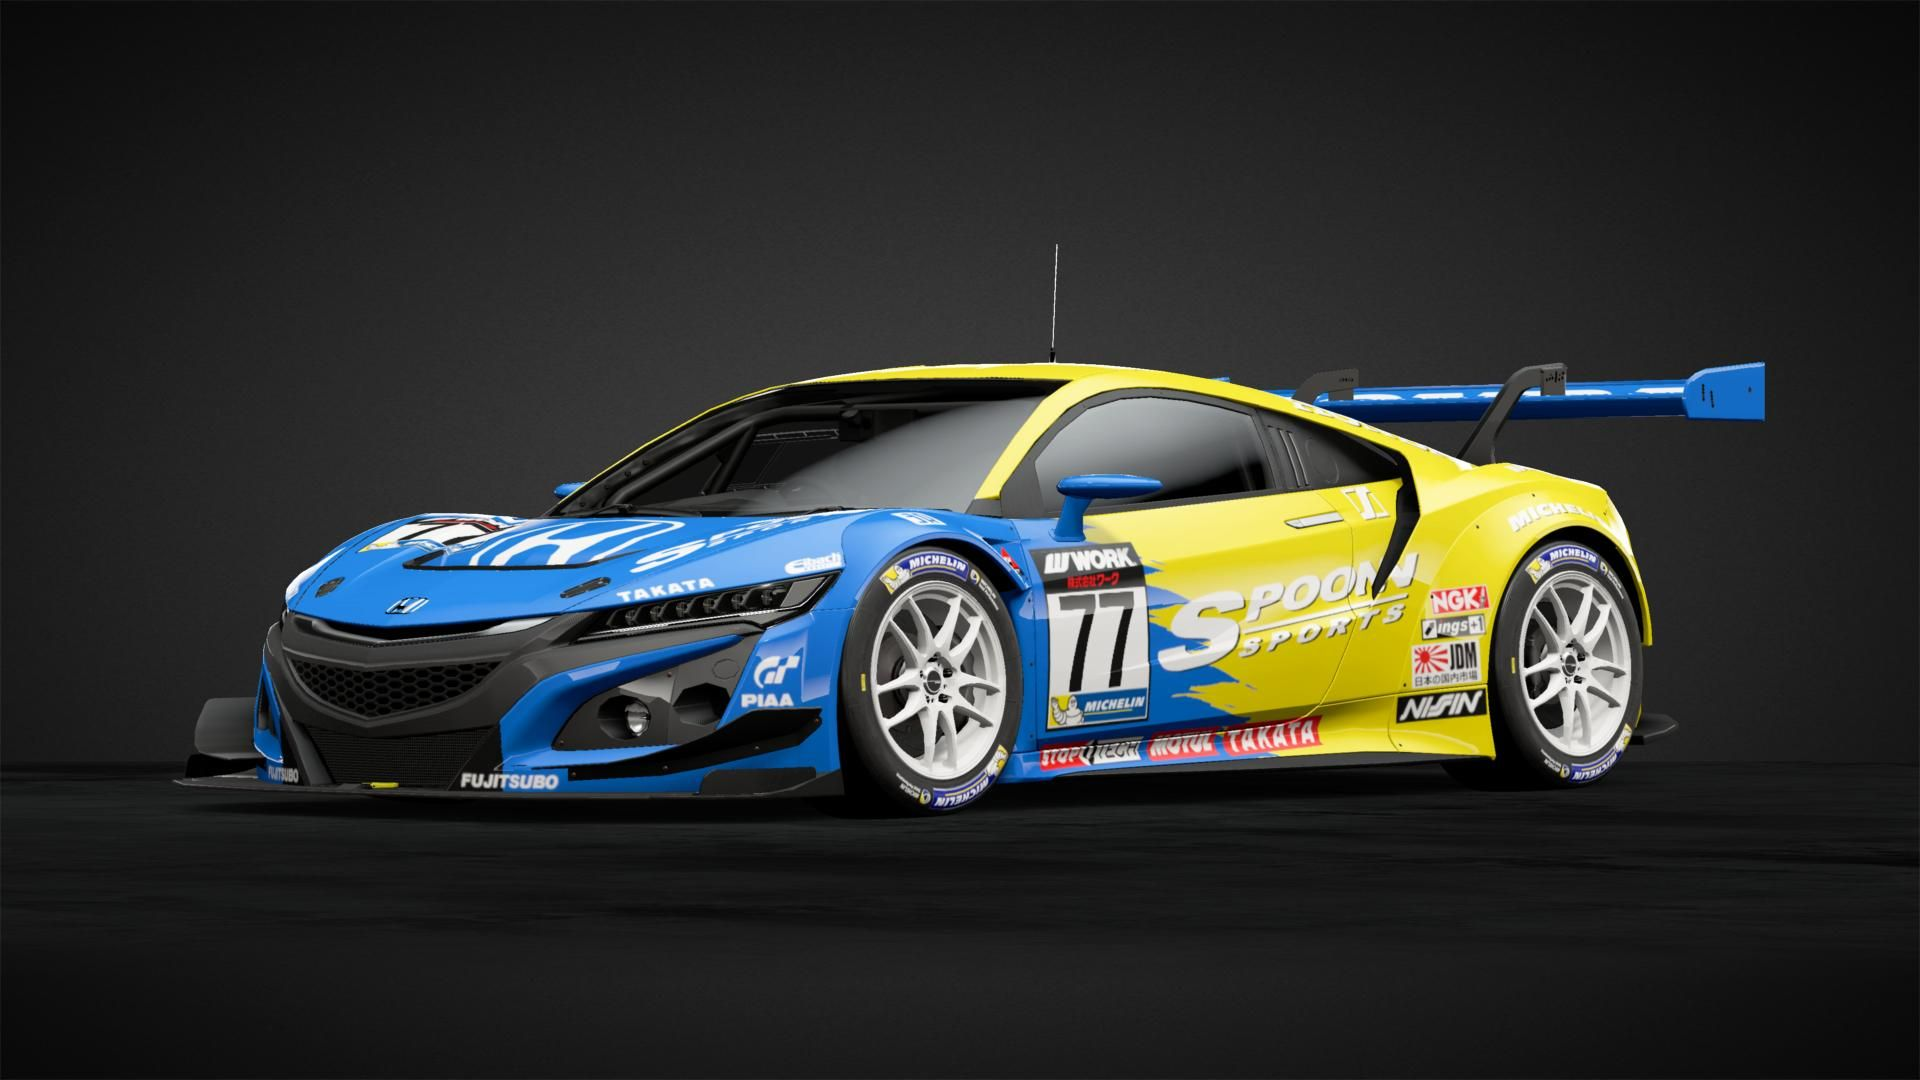 Spoon Nsx Gr 3 77 Car Livery By Eckosystem1084 Community Gran Turismo Sport Nsx Japan Cars Car